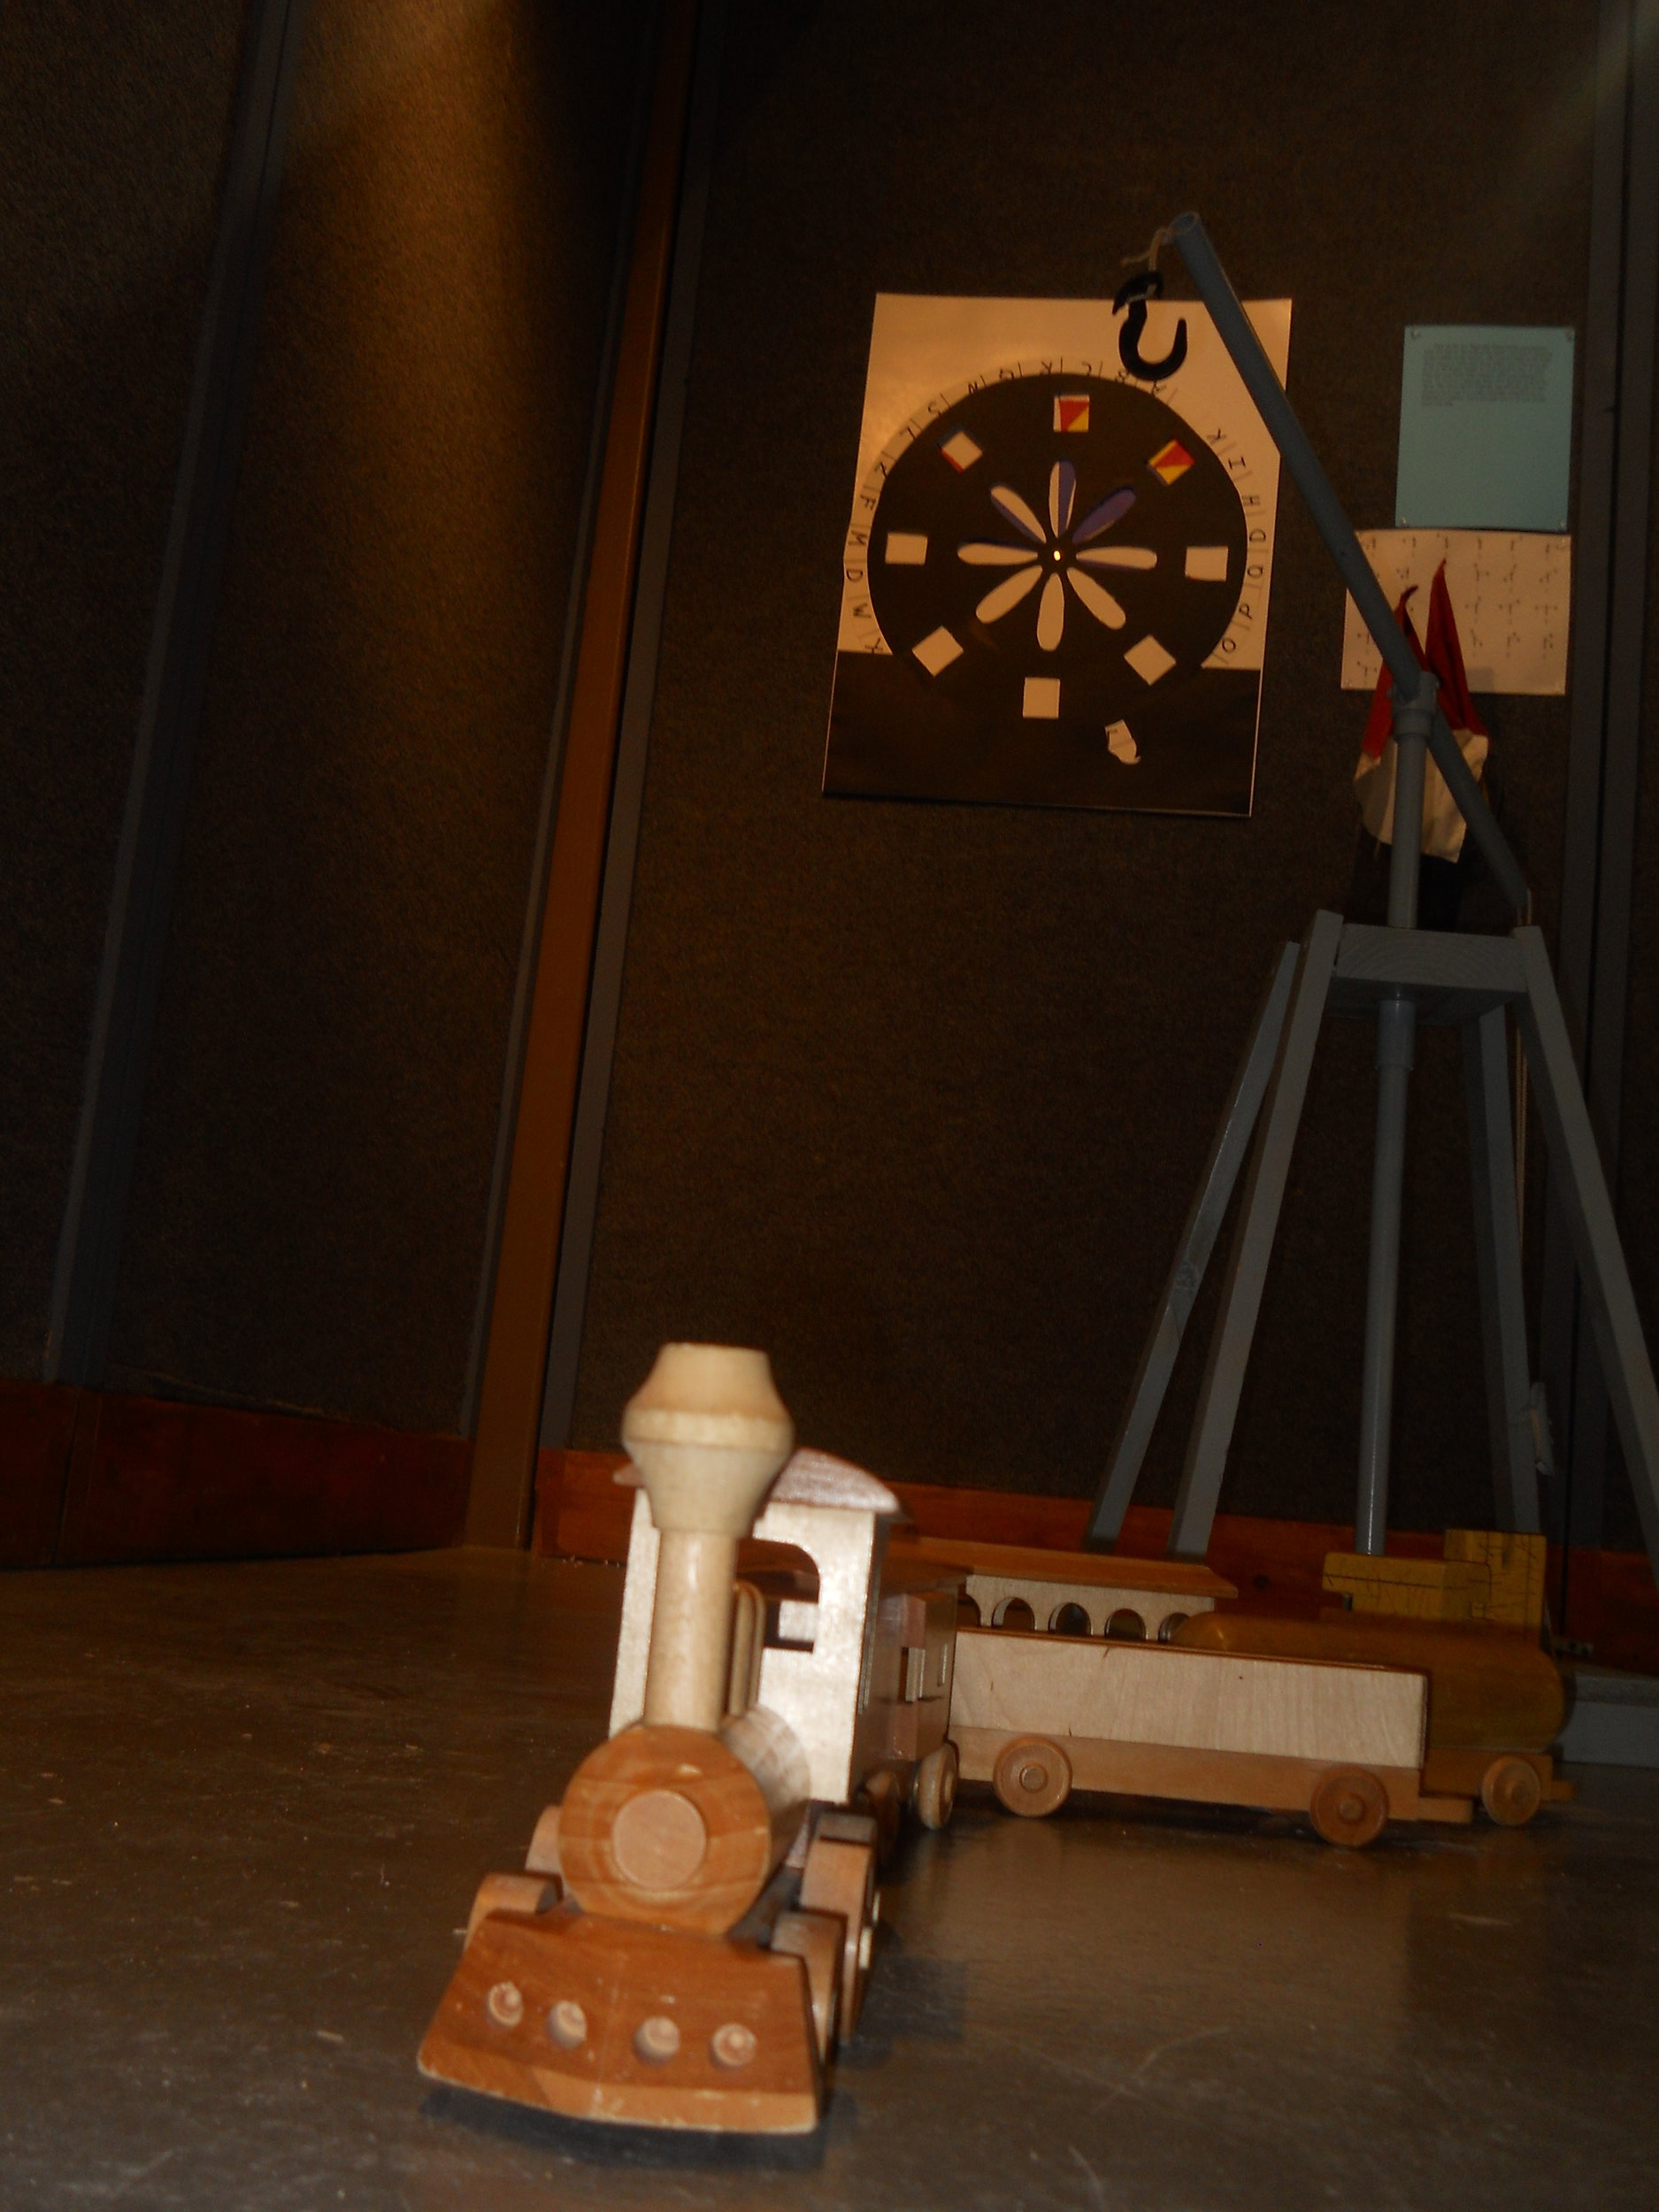 Trains and more - The popular wooden toys return. Lift hay with the derrick, sit on the steam shovel, and become a train engineer.